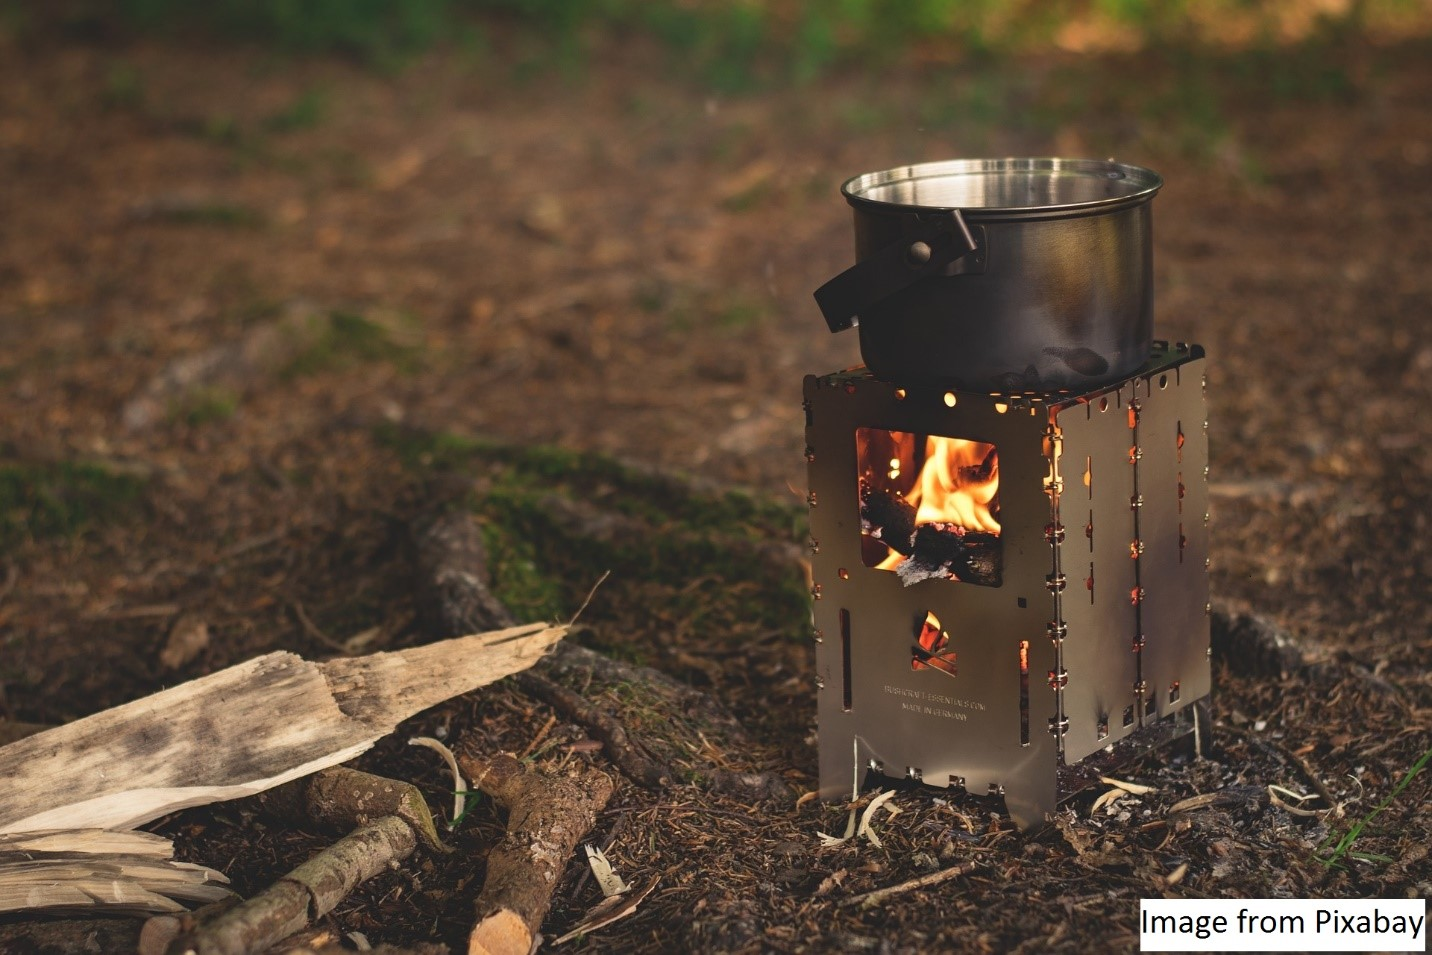 Cooking with improved biomass stoves in Southern Africa